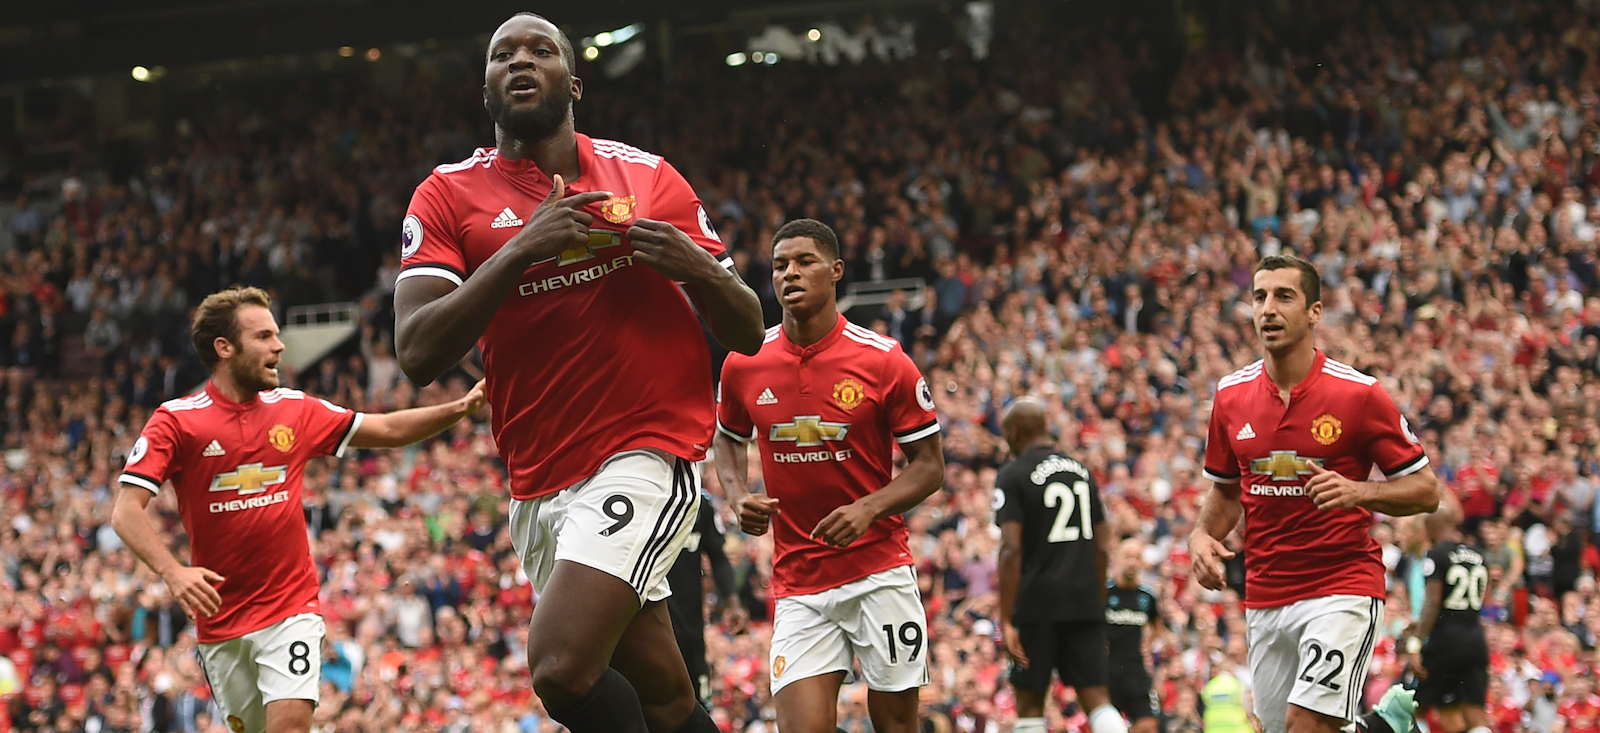 Manchester United 4-0 West Ham United: Player ratings